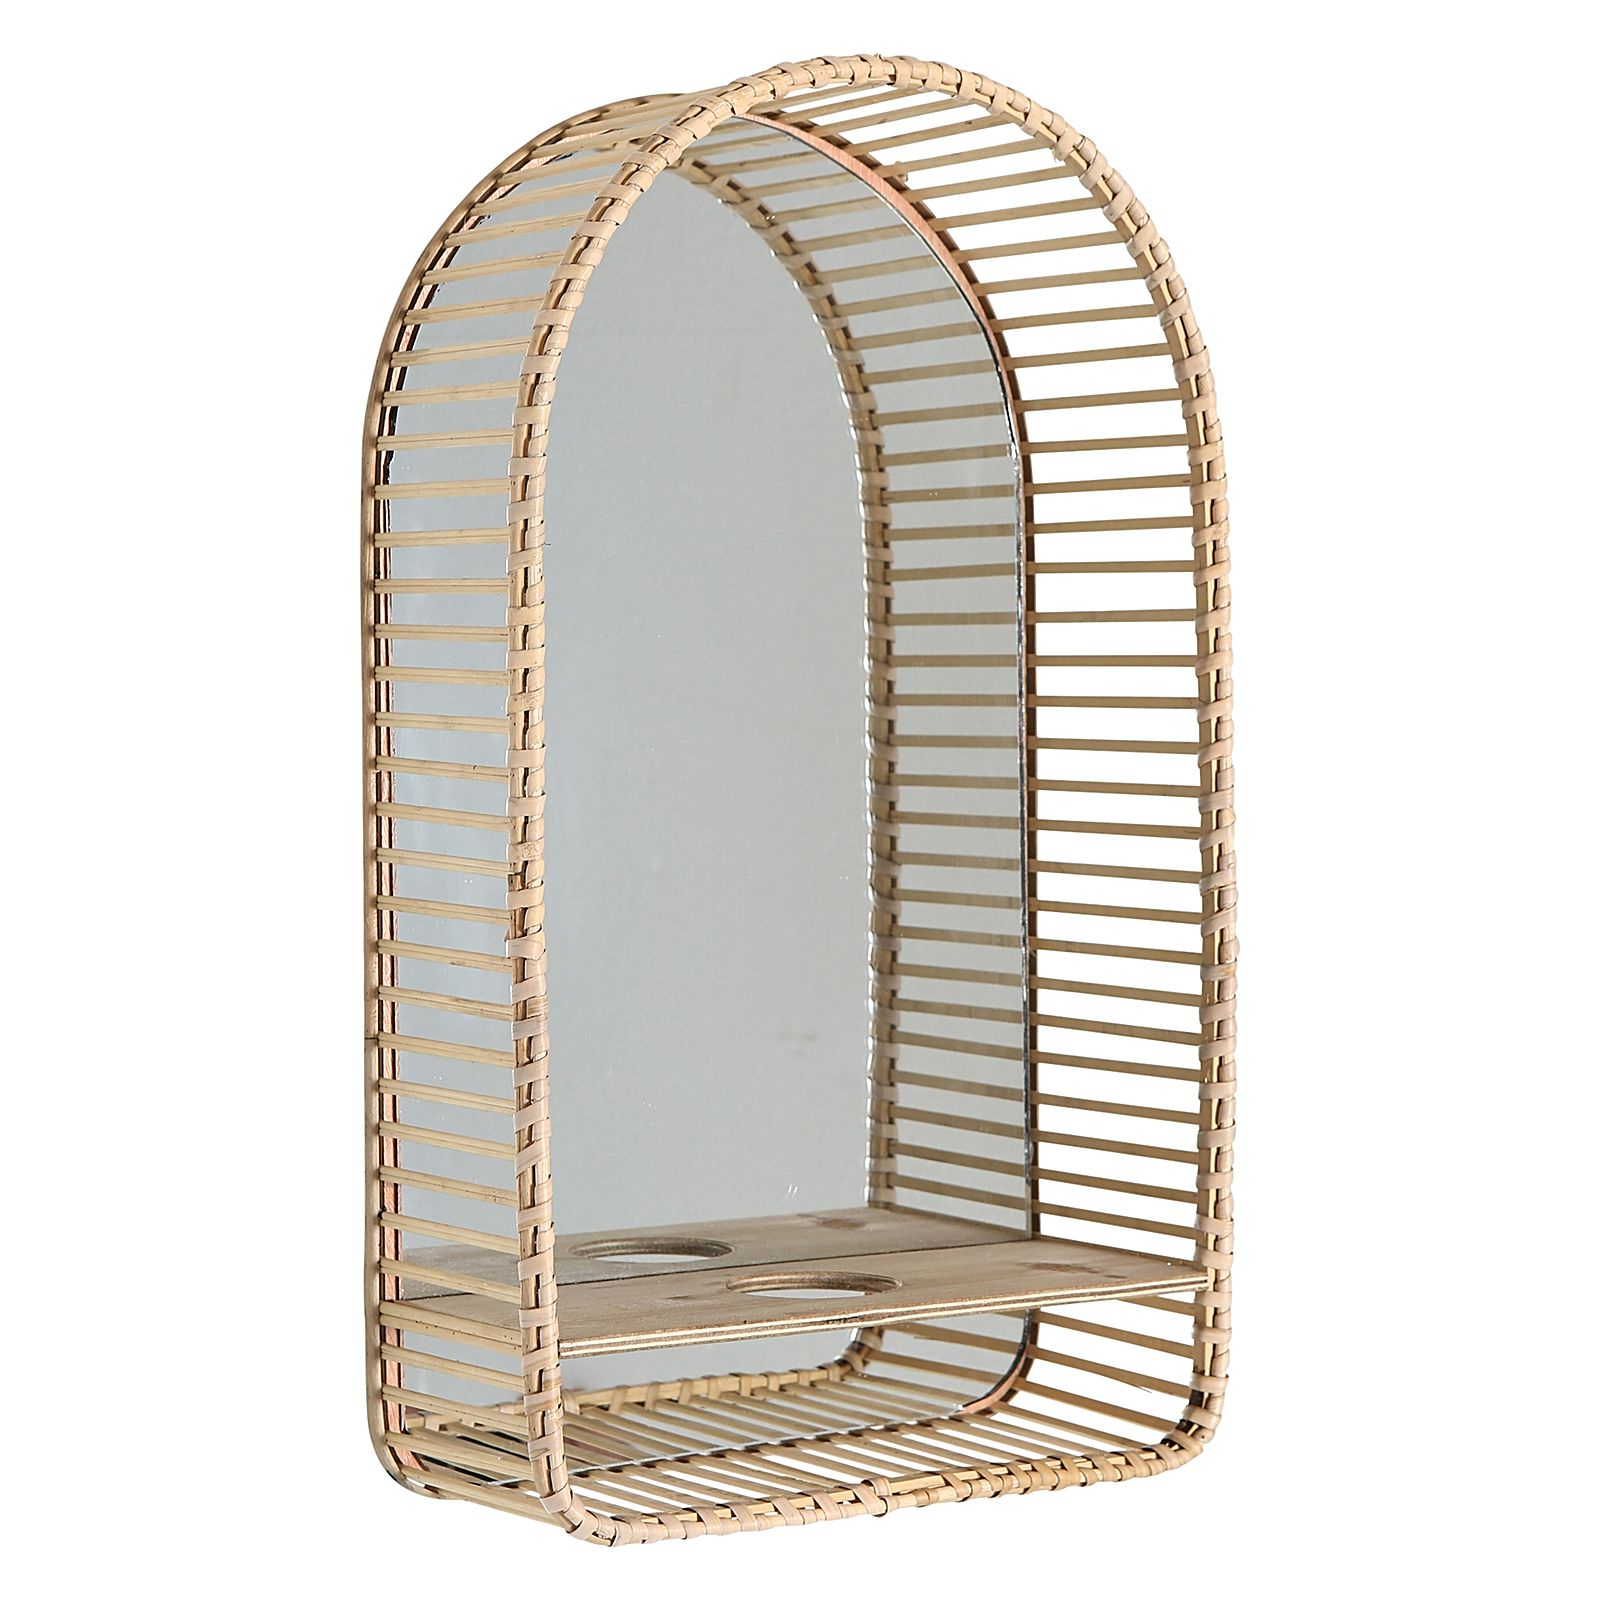 Hana Arch Wall Mirror With Candle Holder Intended For Trendy Reflection Wall Mirrors (Gallery 8 of 20)